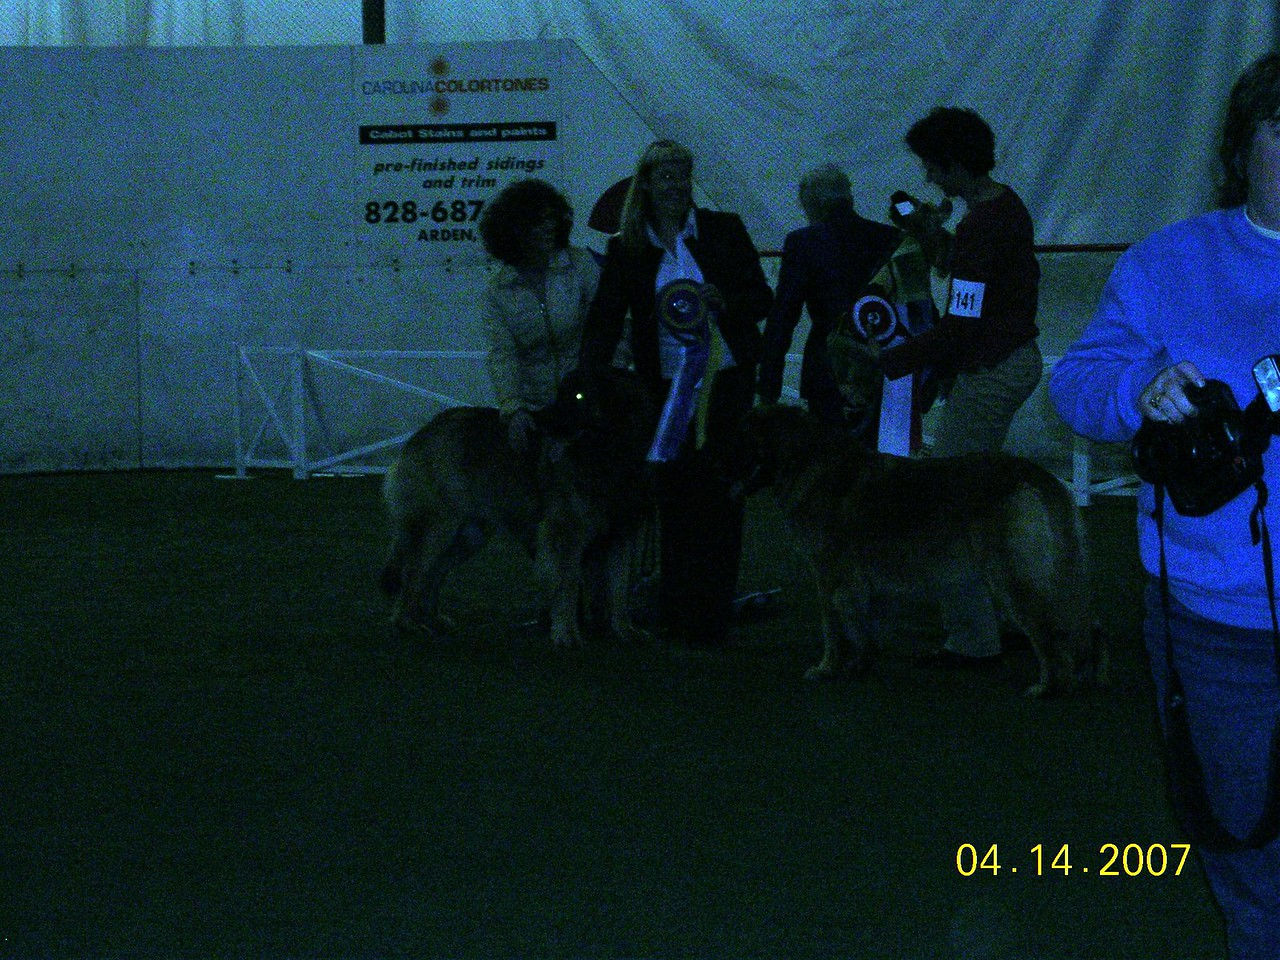 The winners of the specialty. Hugs and Cheyenne